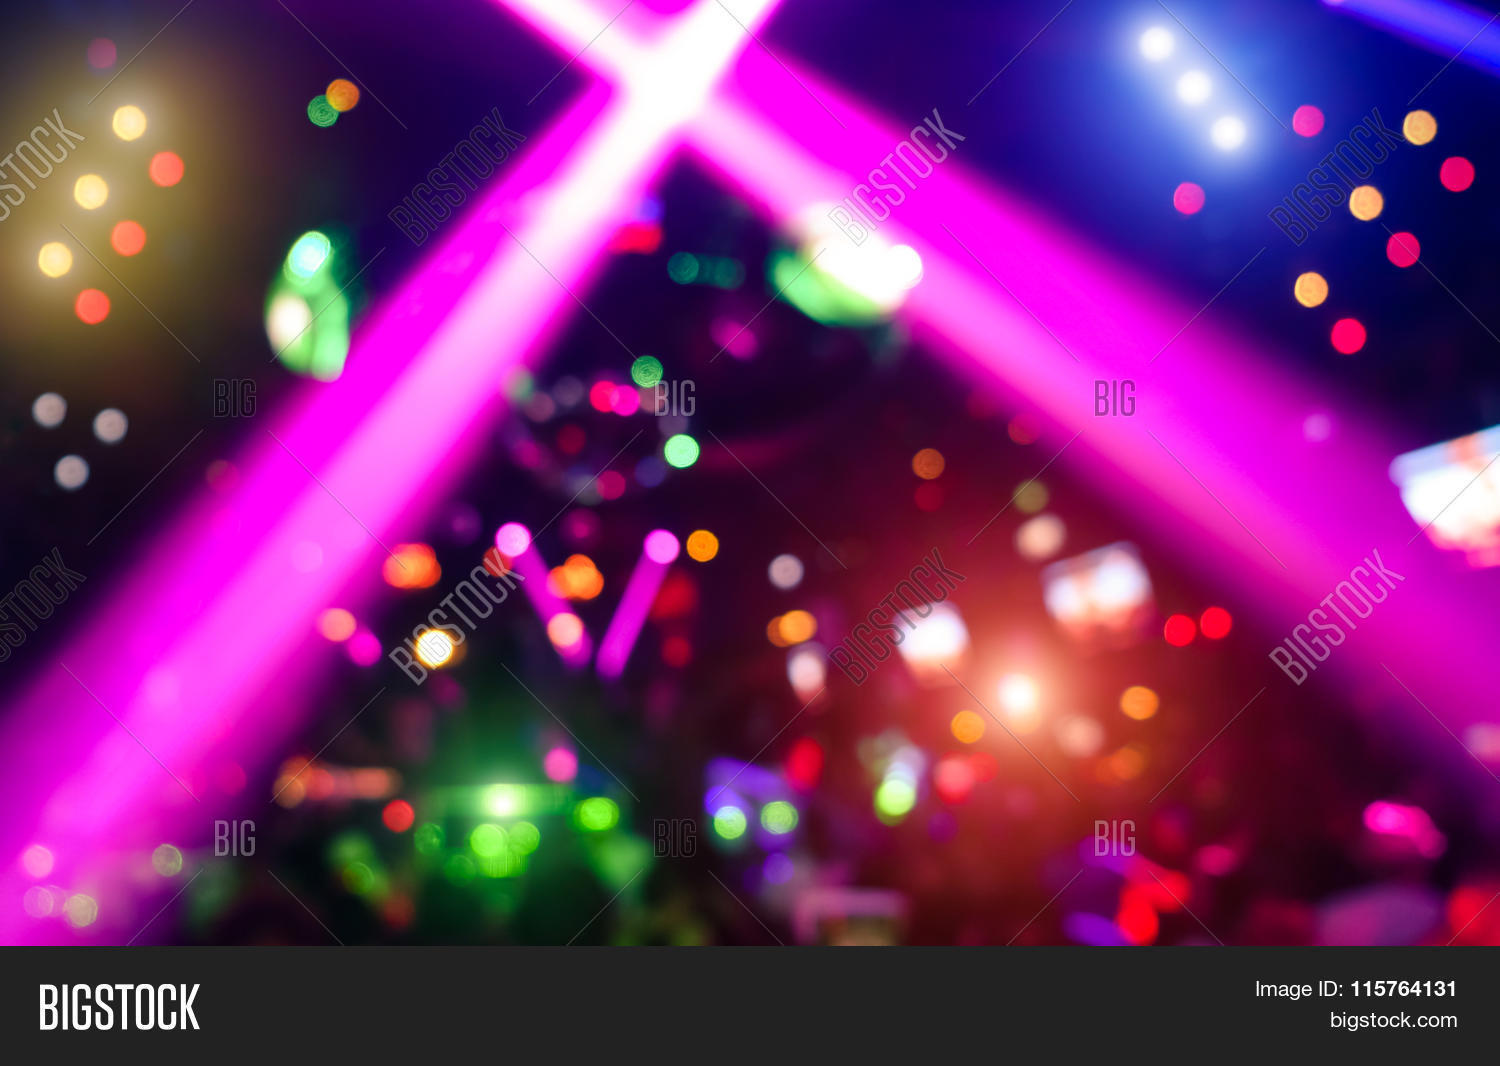 laser show party wallpaper - photo #31